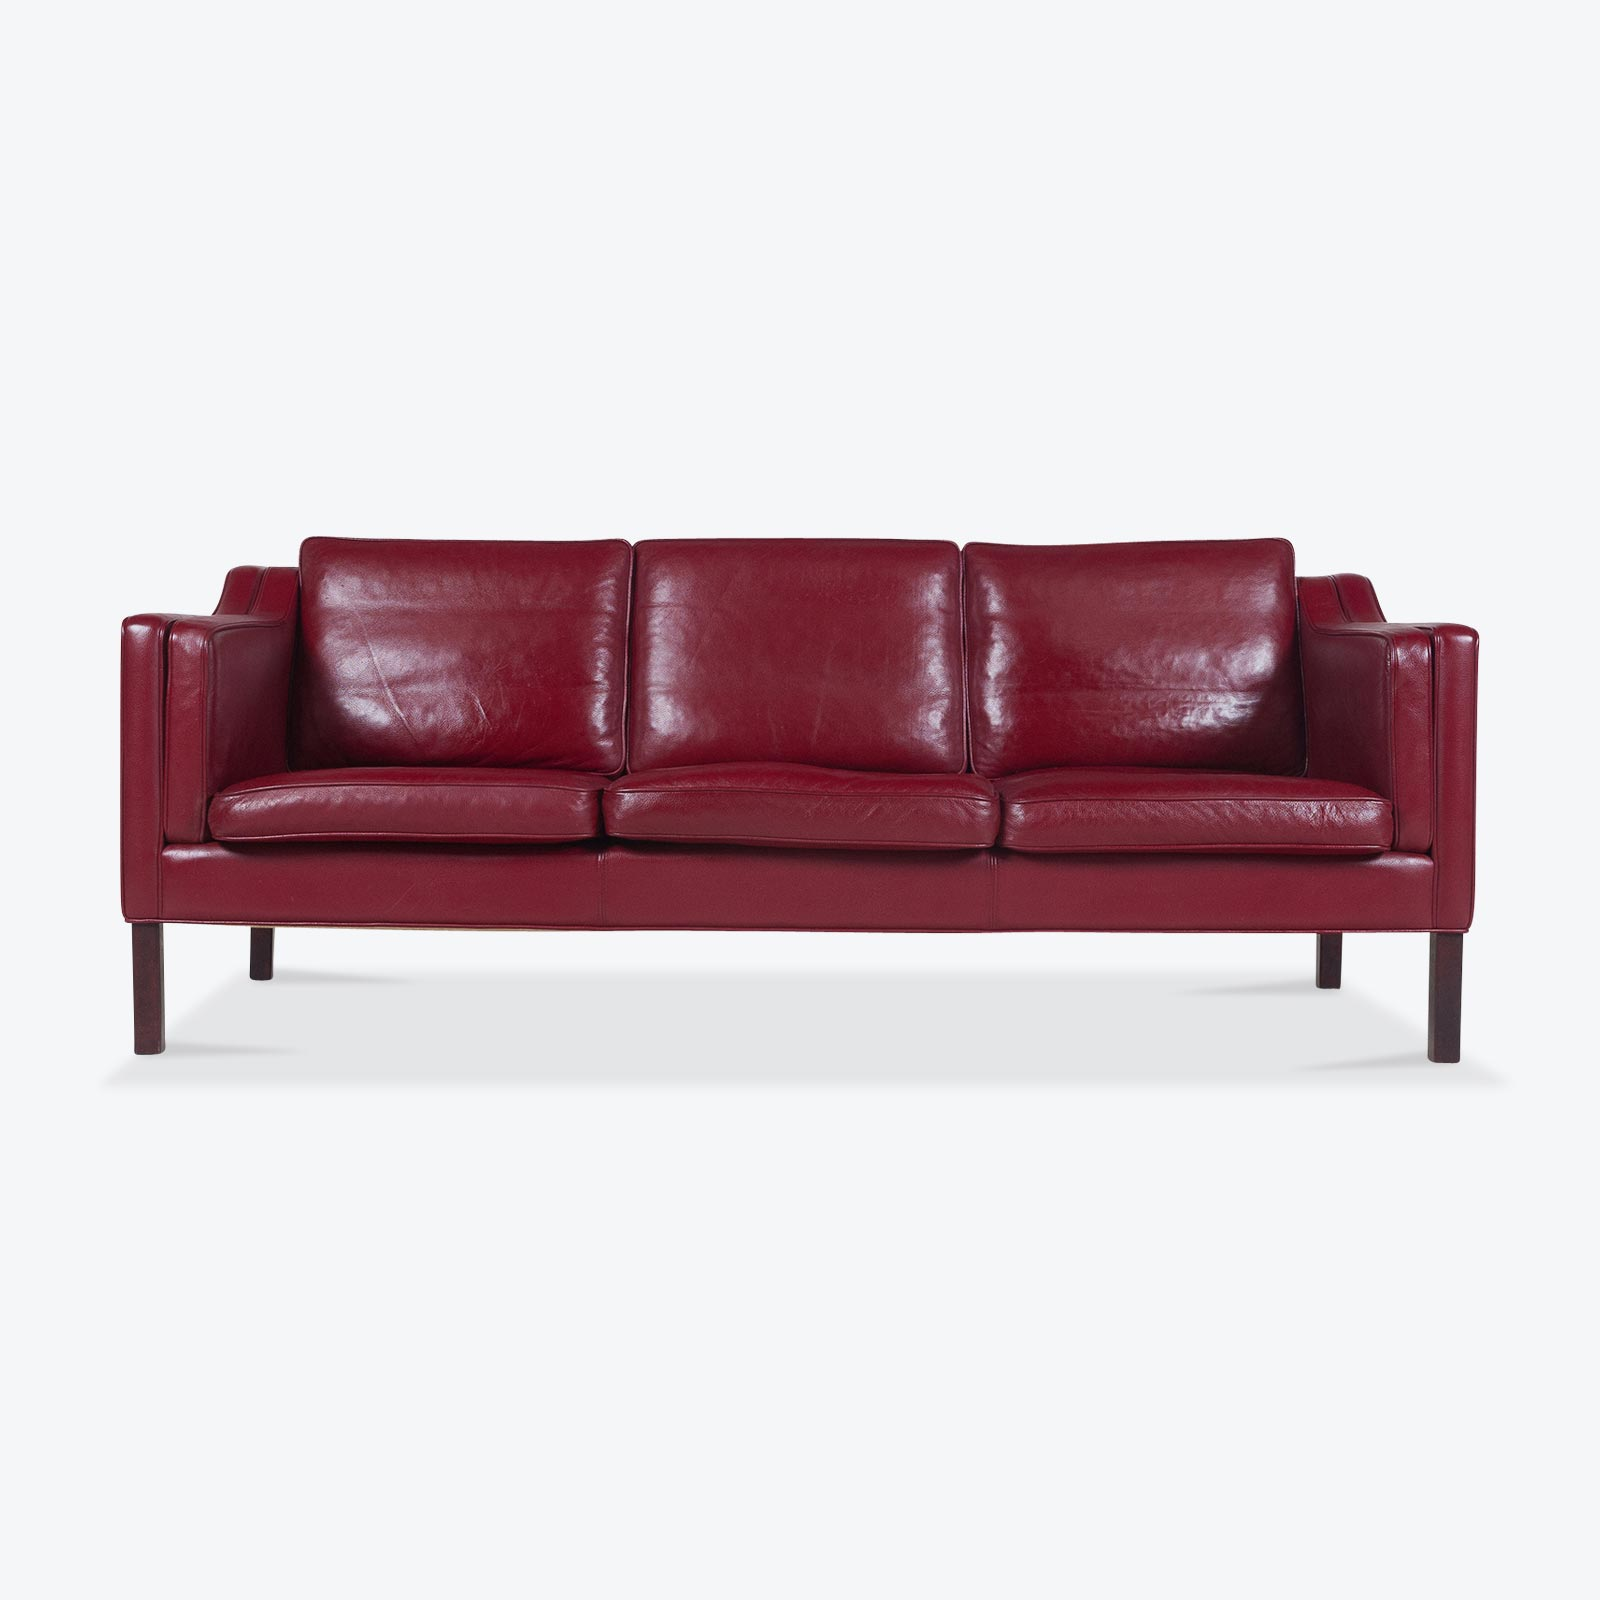 cherry red leather sofa one seat with chaise 3 in and stained legs 1960s